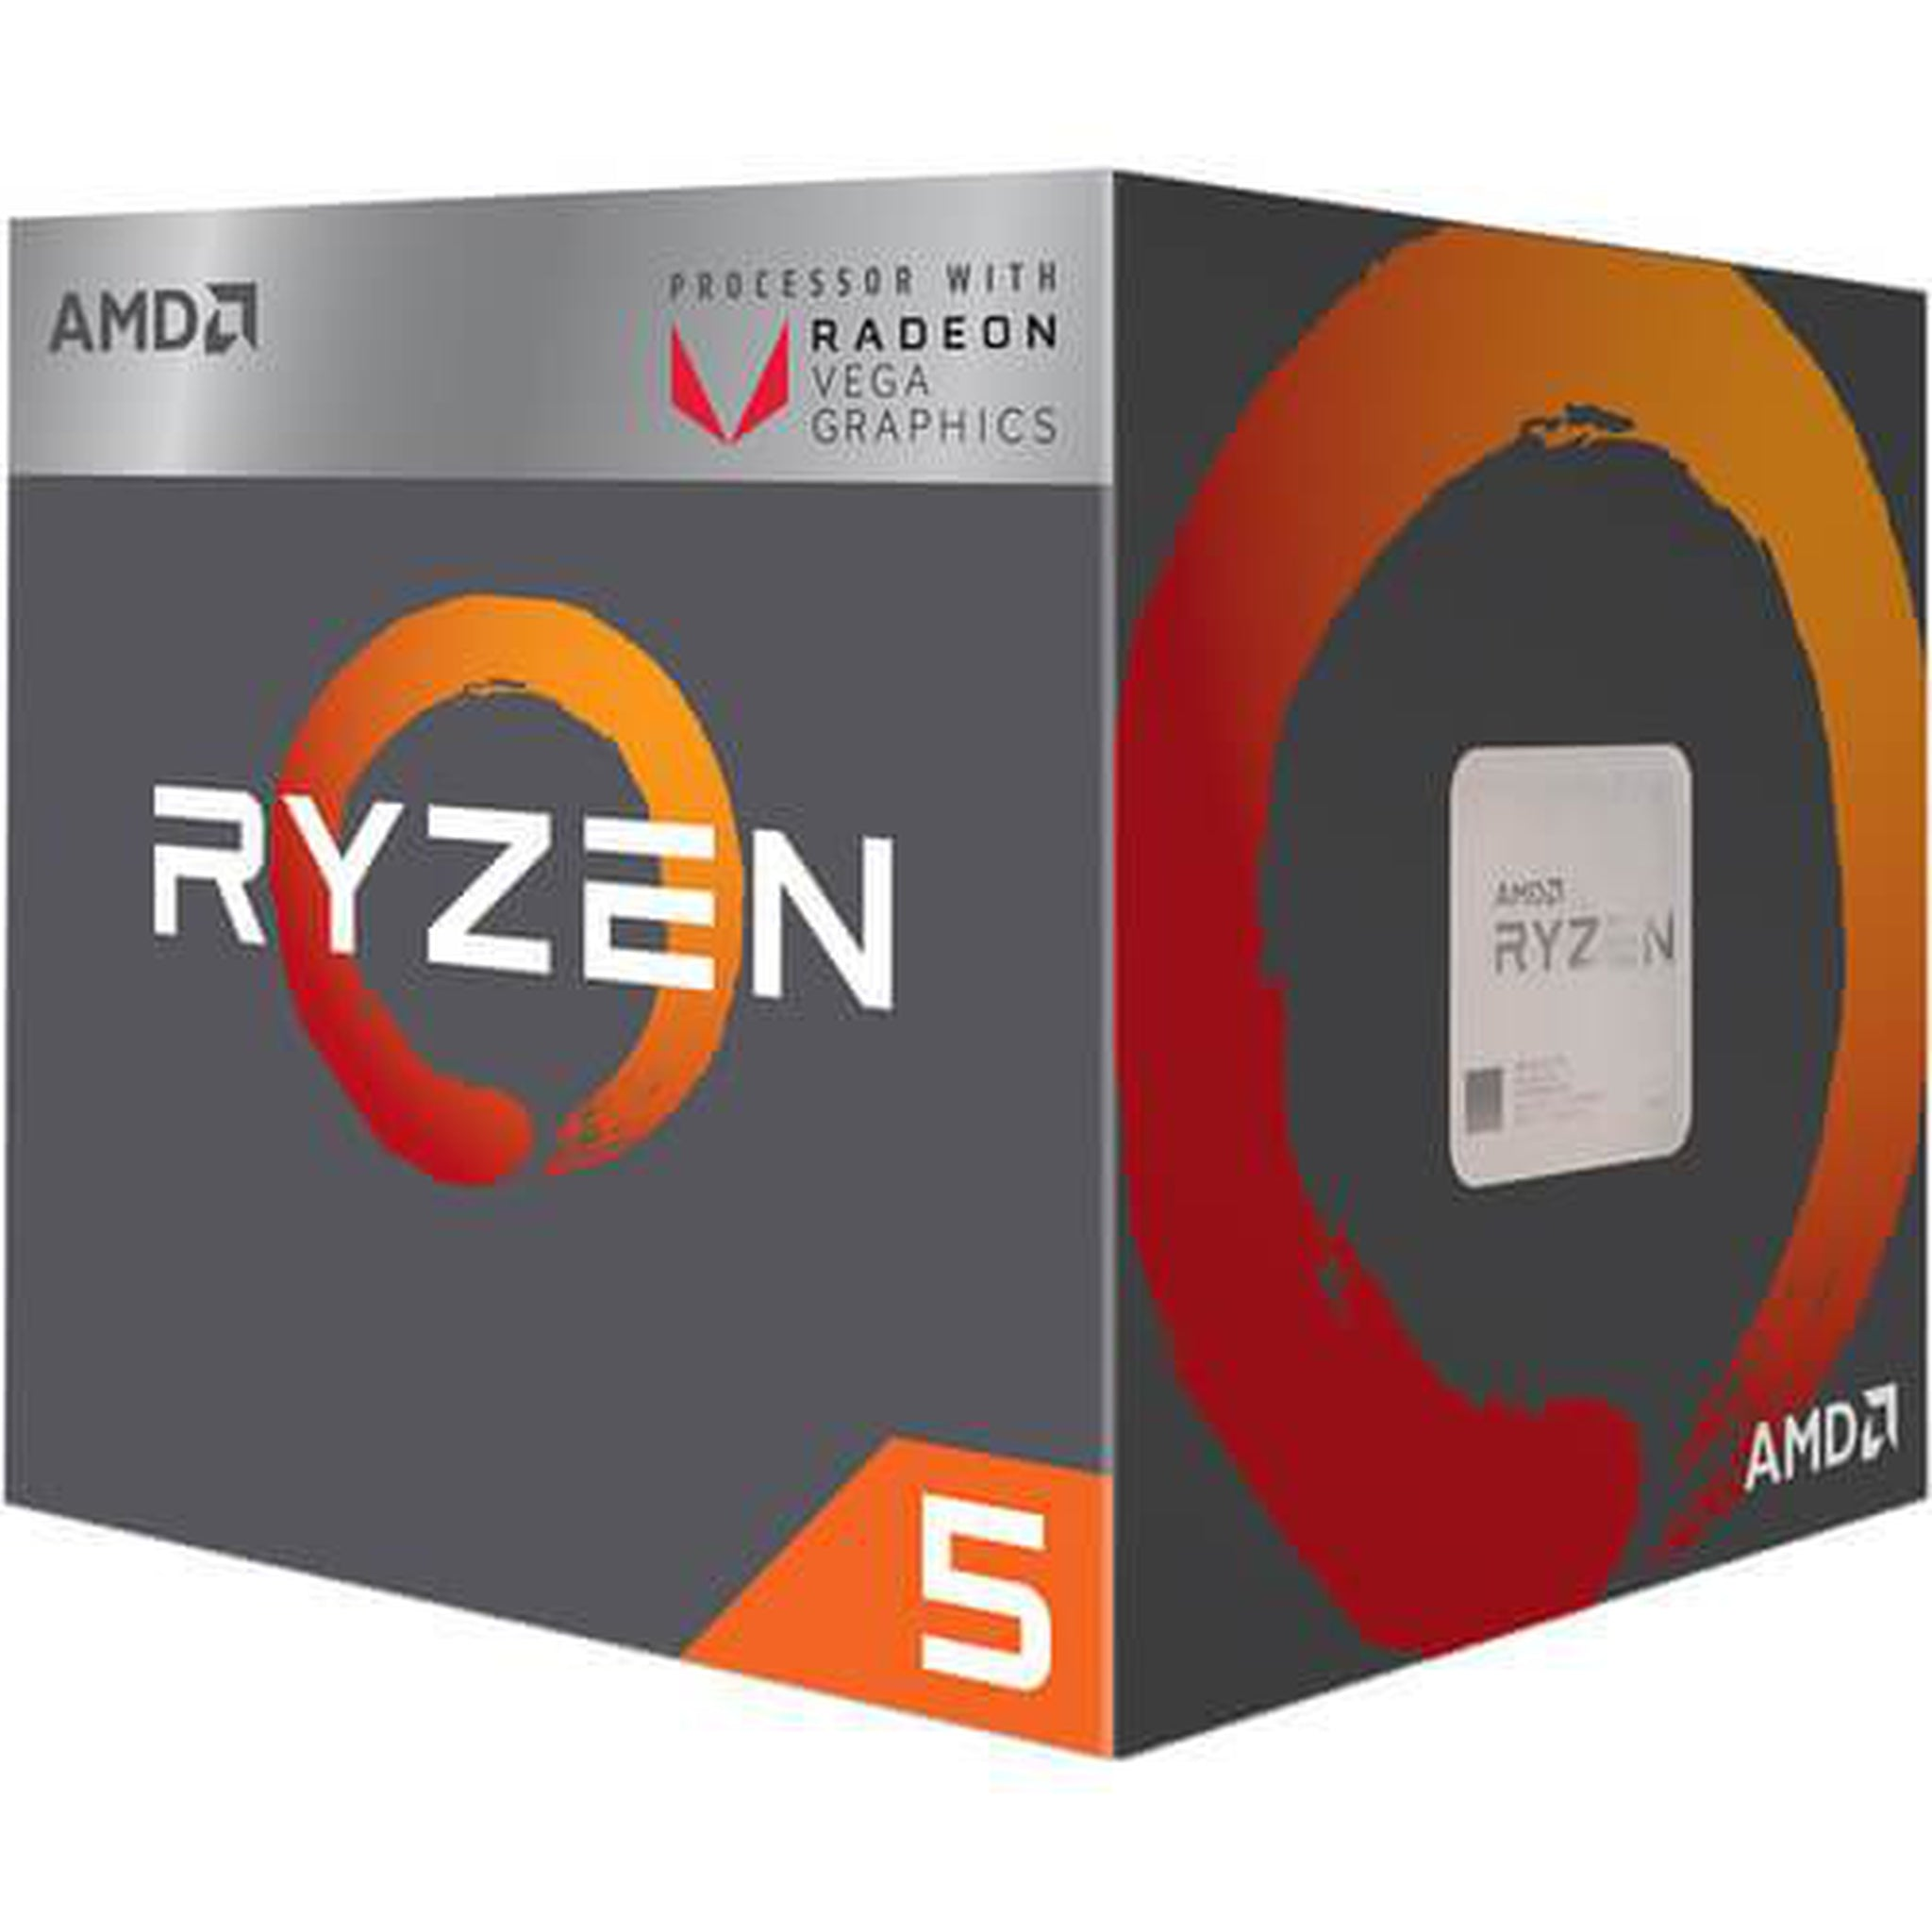 AMD CPU - RYZEN 5 2400G - Choice Computer Technologies